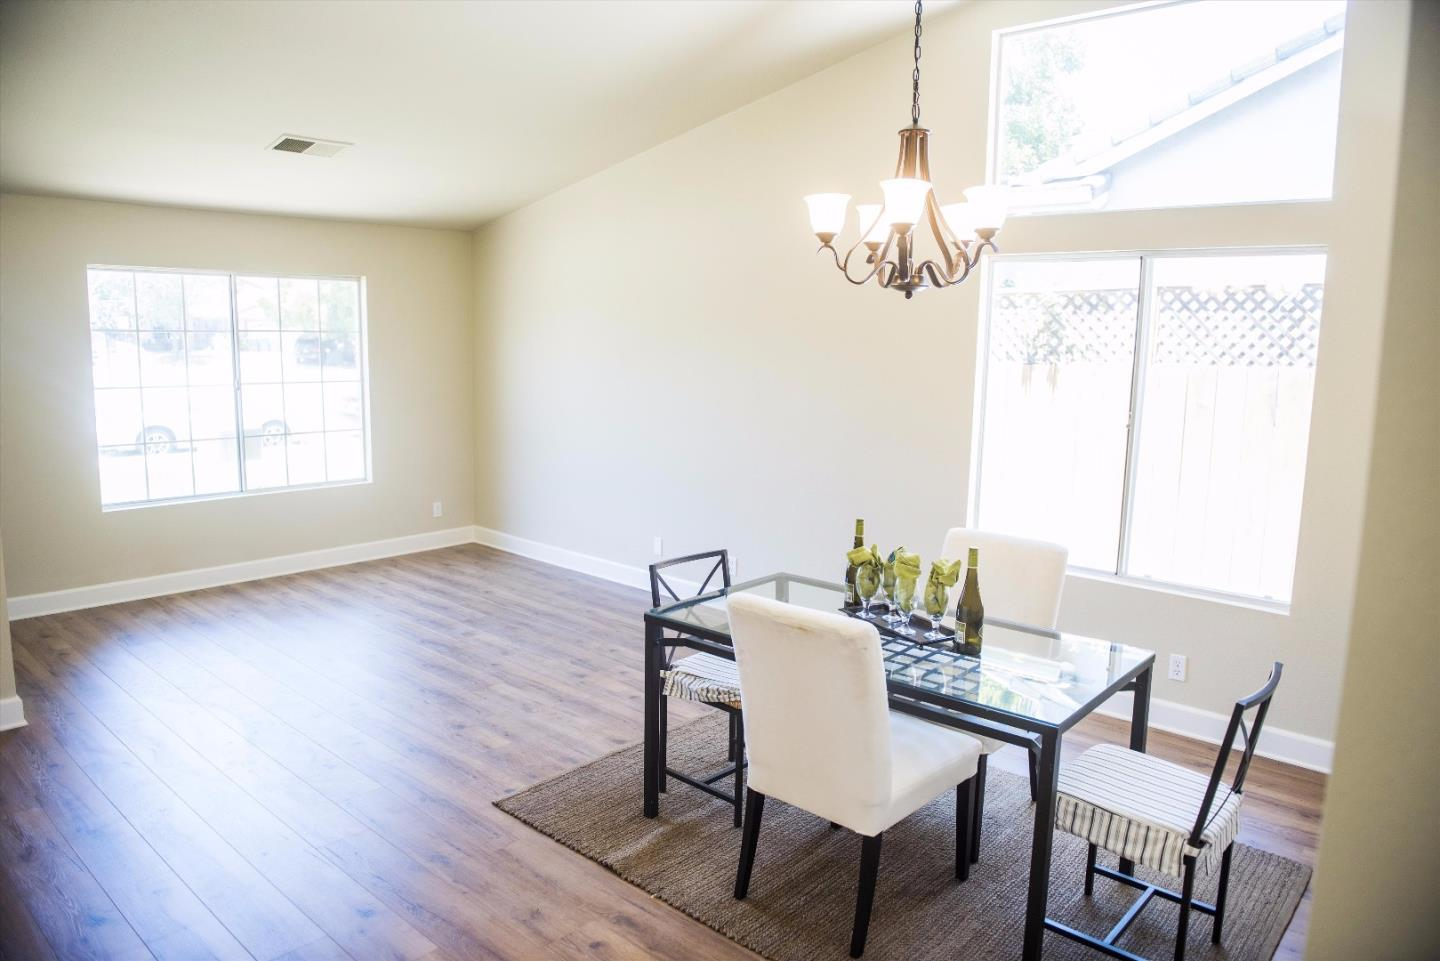 Additional photo for property listing at 871 Marne Drive  Hollister, Kalifornien 95023 Vereinigte Staaten